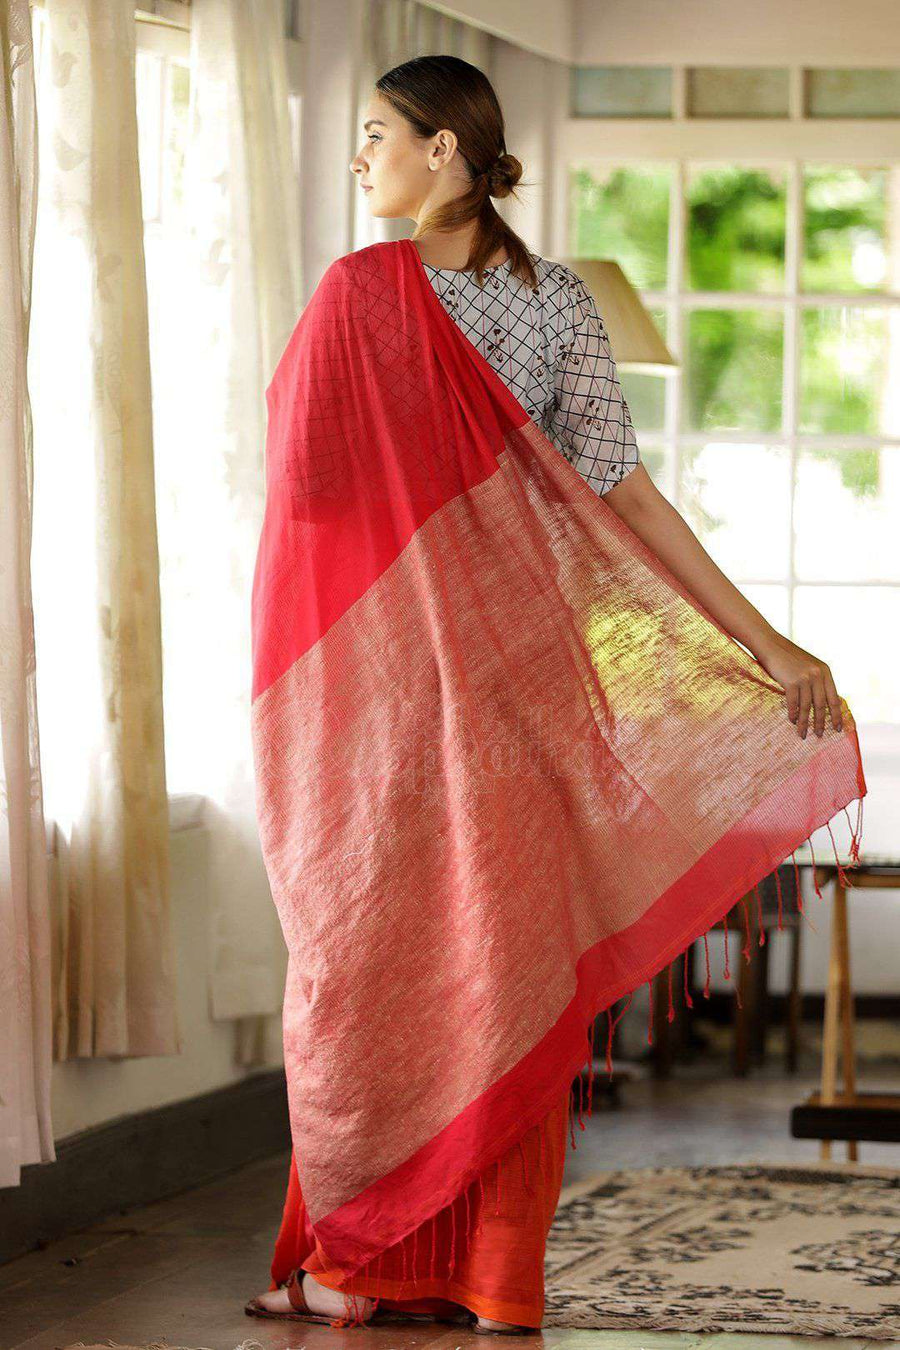 Orange Cotton Saree With Ghicha Pallu Cotton Threads Of India Roopkatha - A Story of Art